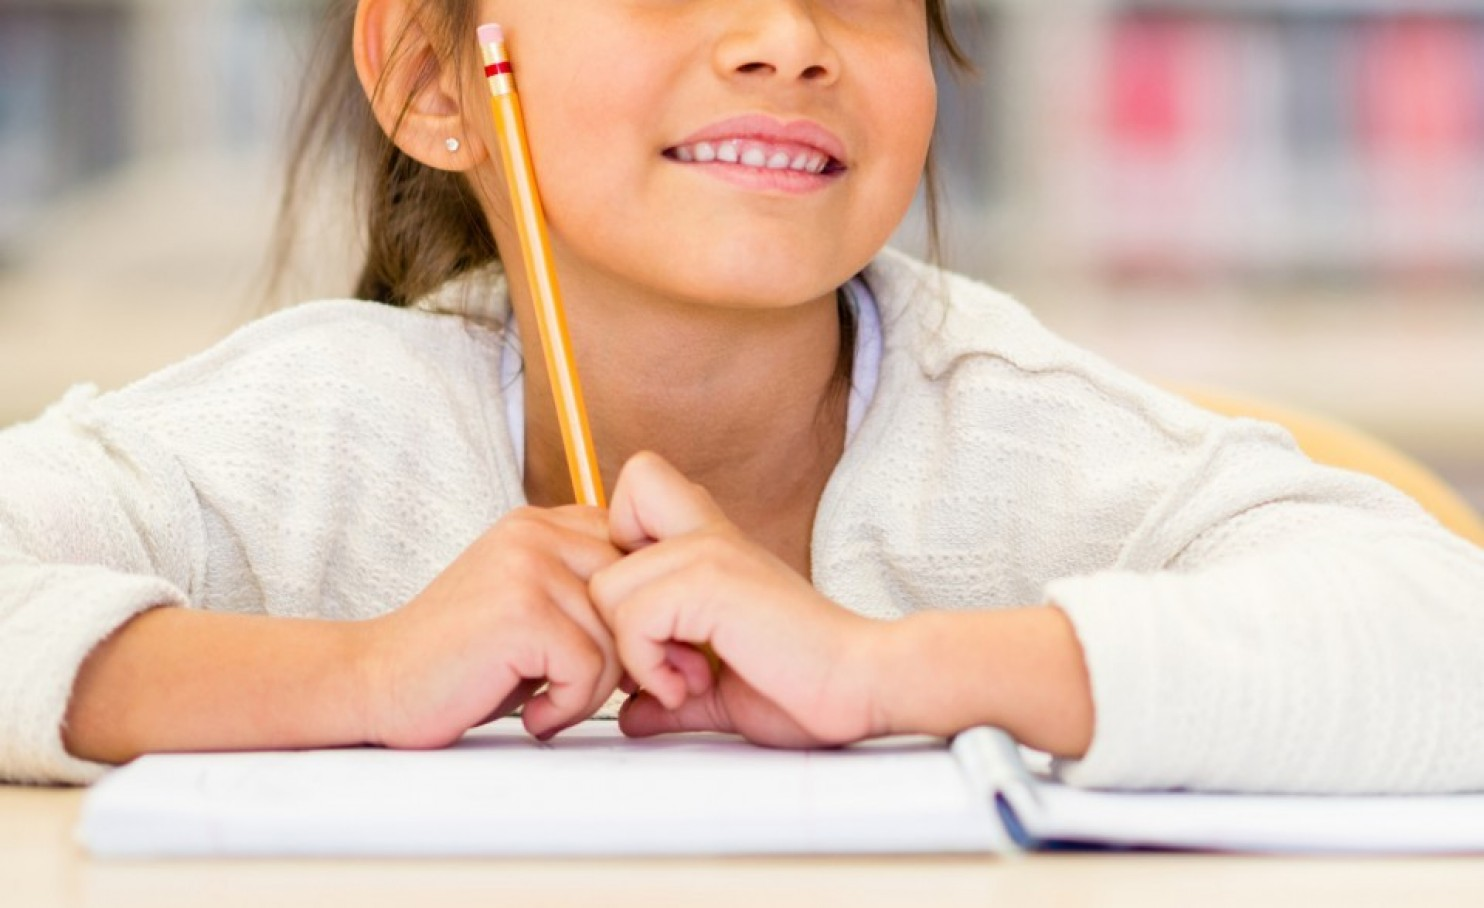 school girl with pencil and notebook. photo from iStock